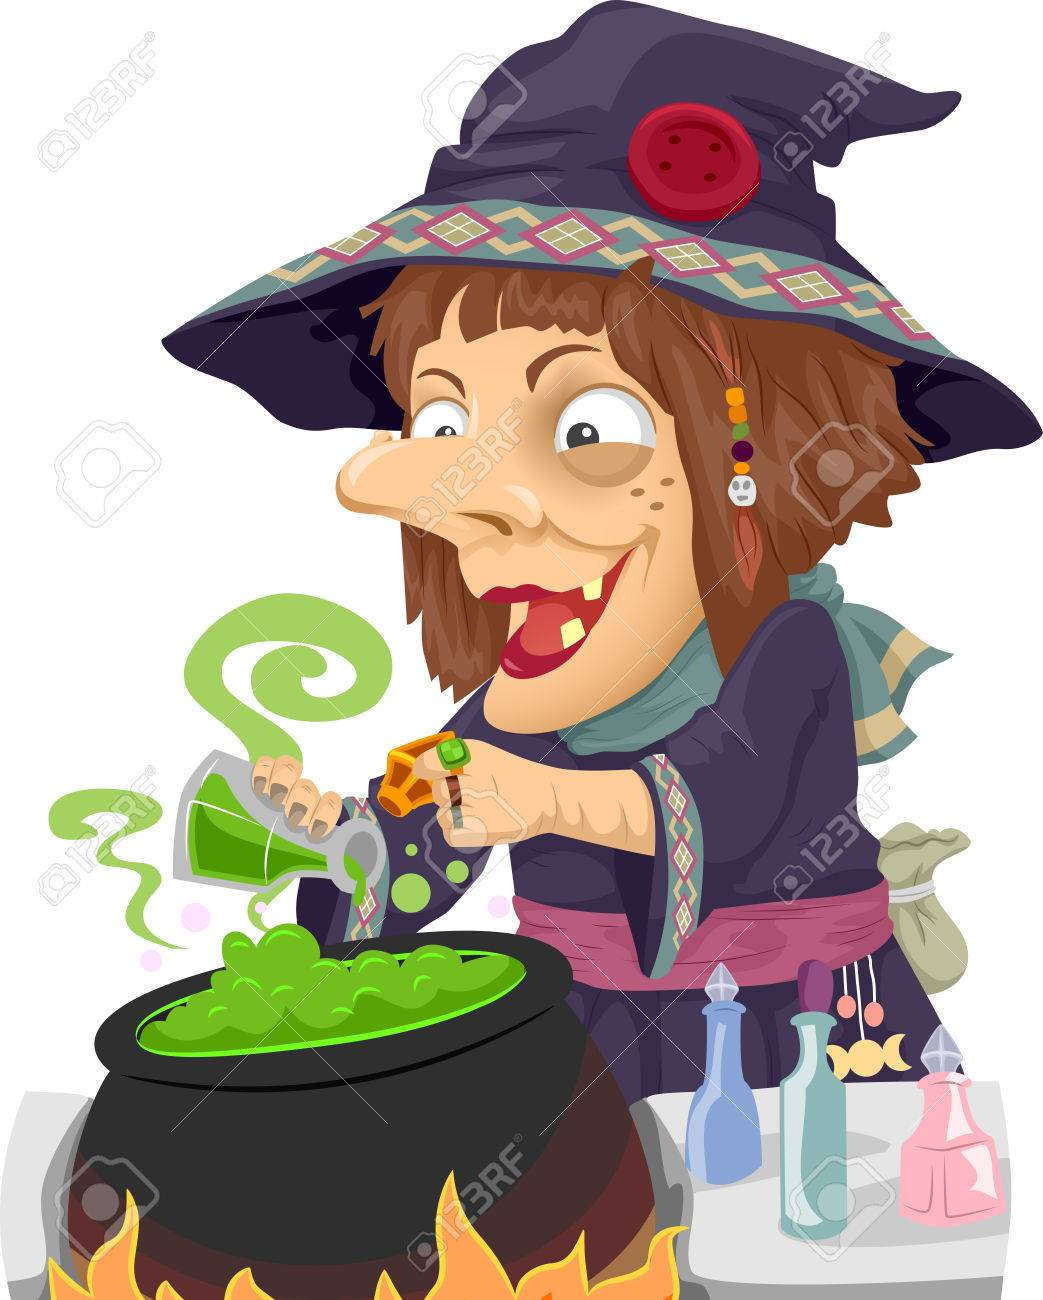 illustration of a witch mixing potions in a cauldron stock photo